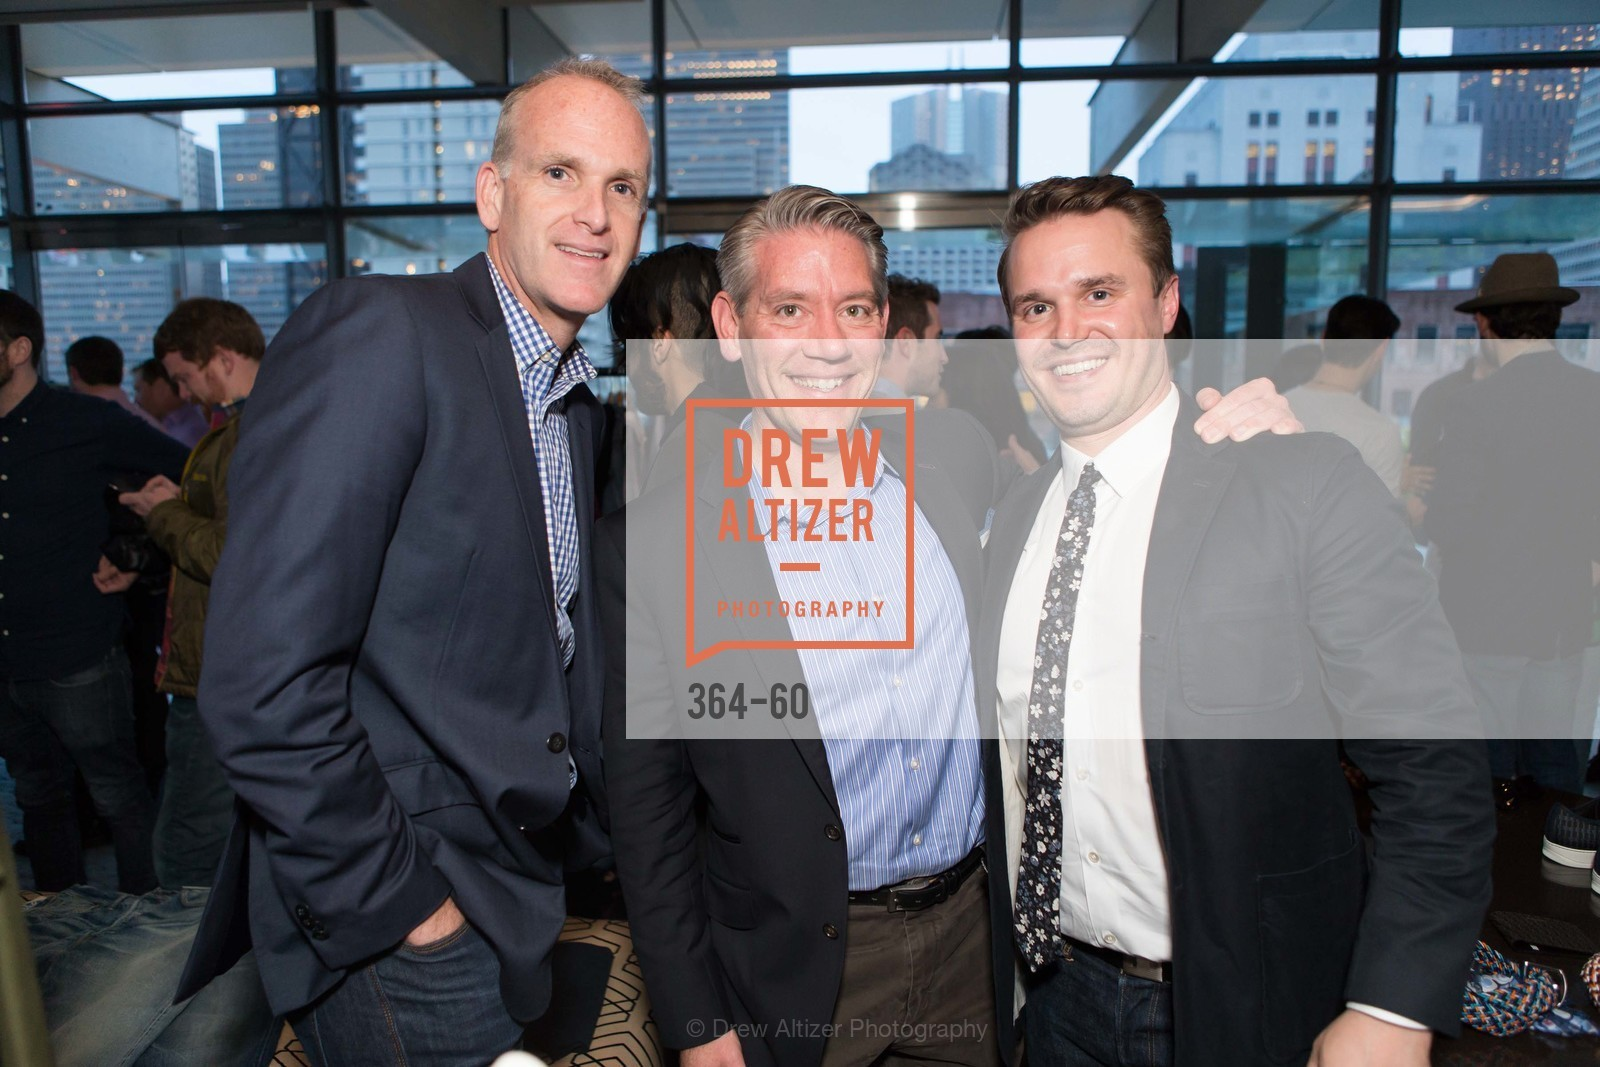 Lawrence Kelly, Brian Benicky, MR PORTER Celebrate The San Francisco Issue of The Journal, The Battery Rooftop - The Battery SF, April 23rd, 2015,Drew Altizer, Drew Altizer Photography, full-service agency, private events, San Francisco photographer, photographer california